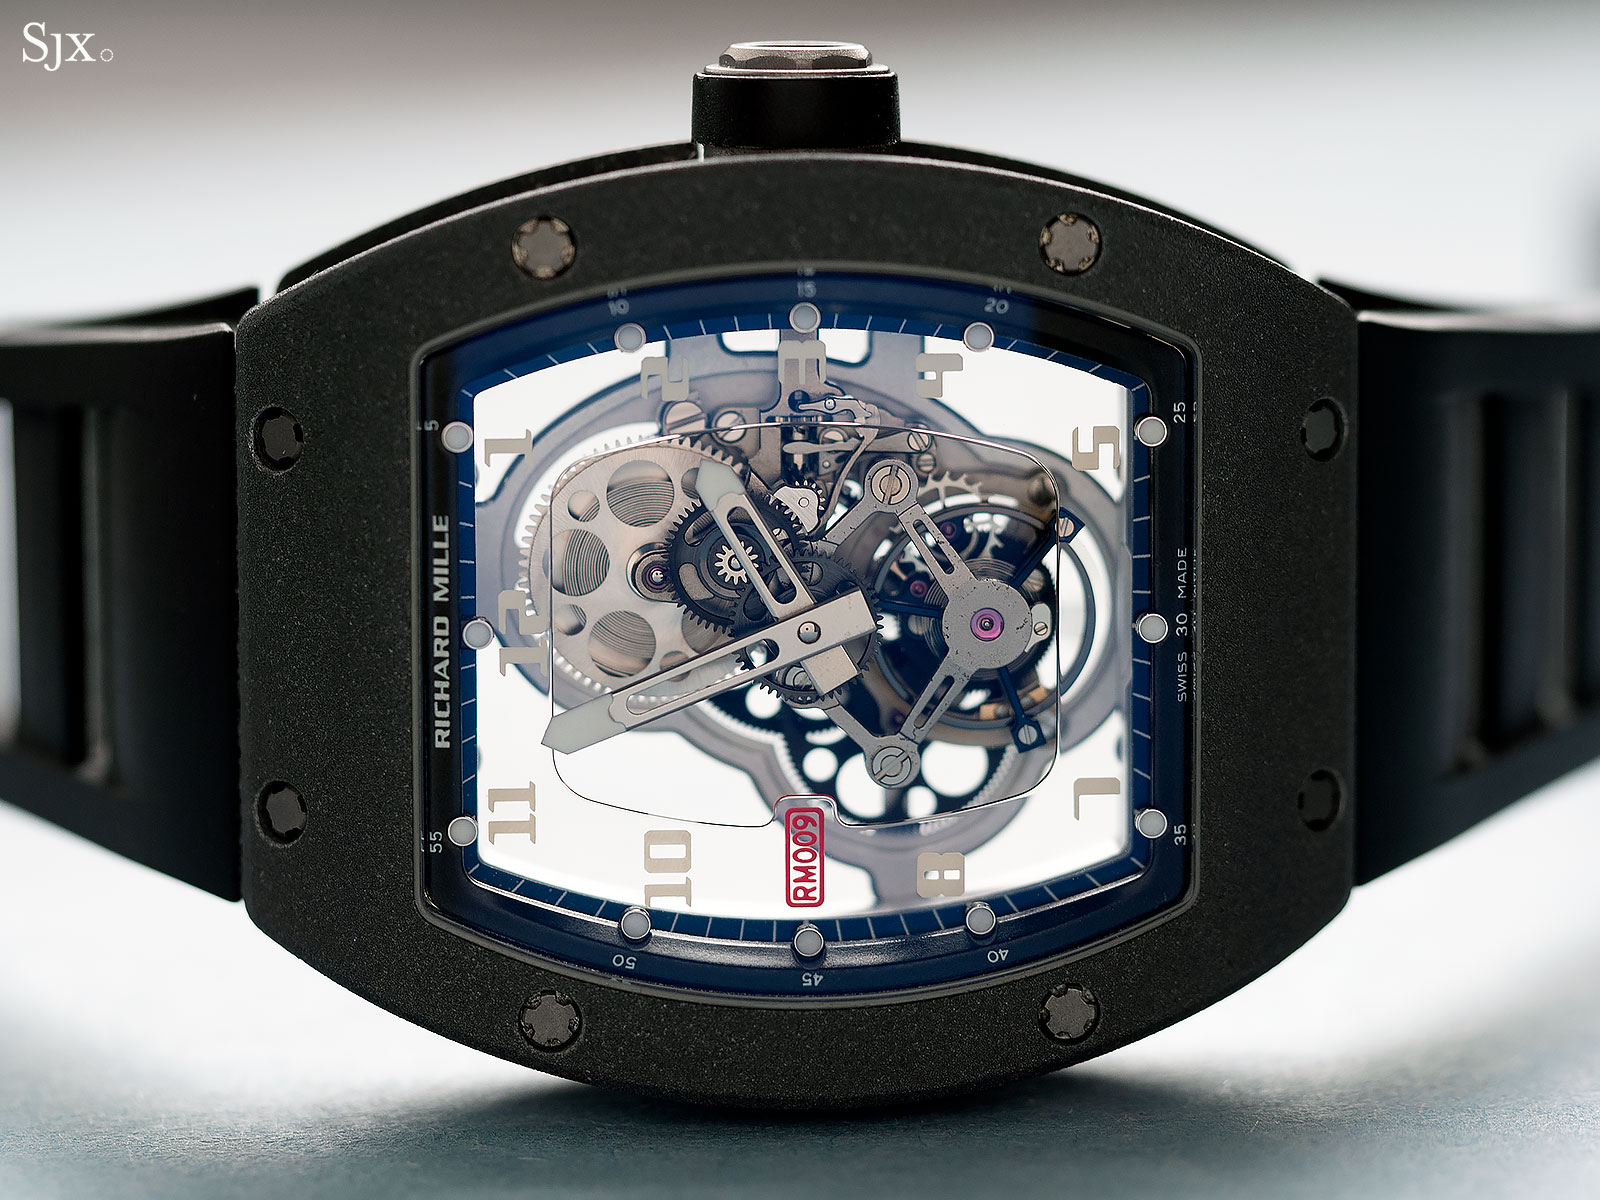 Richard Mille RM009 Alusic tourbillon 13